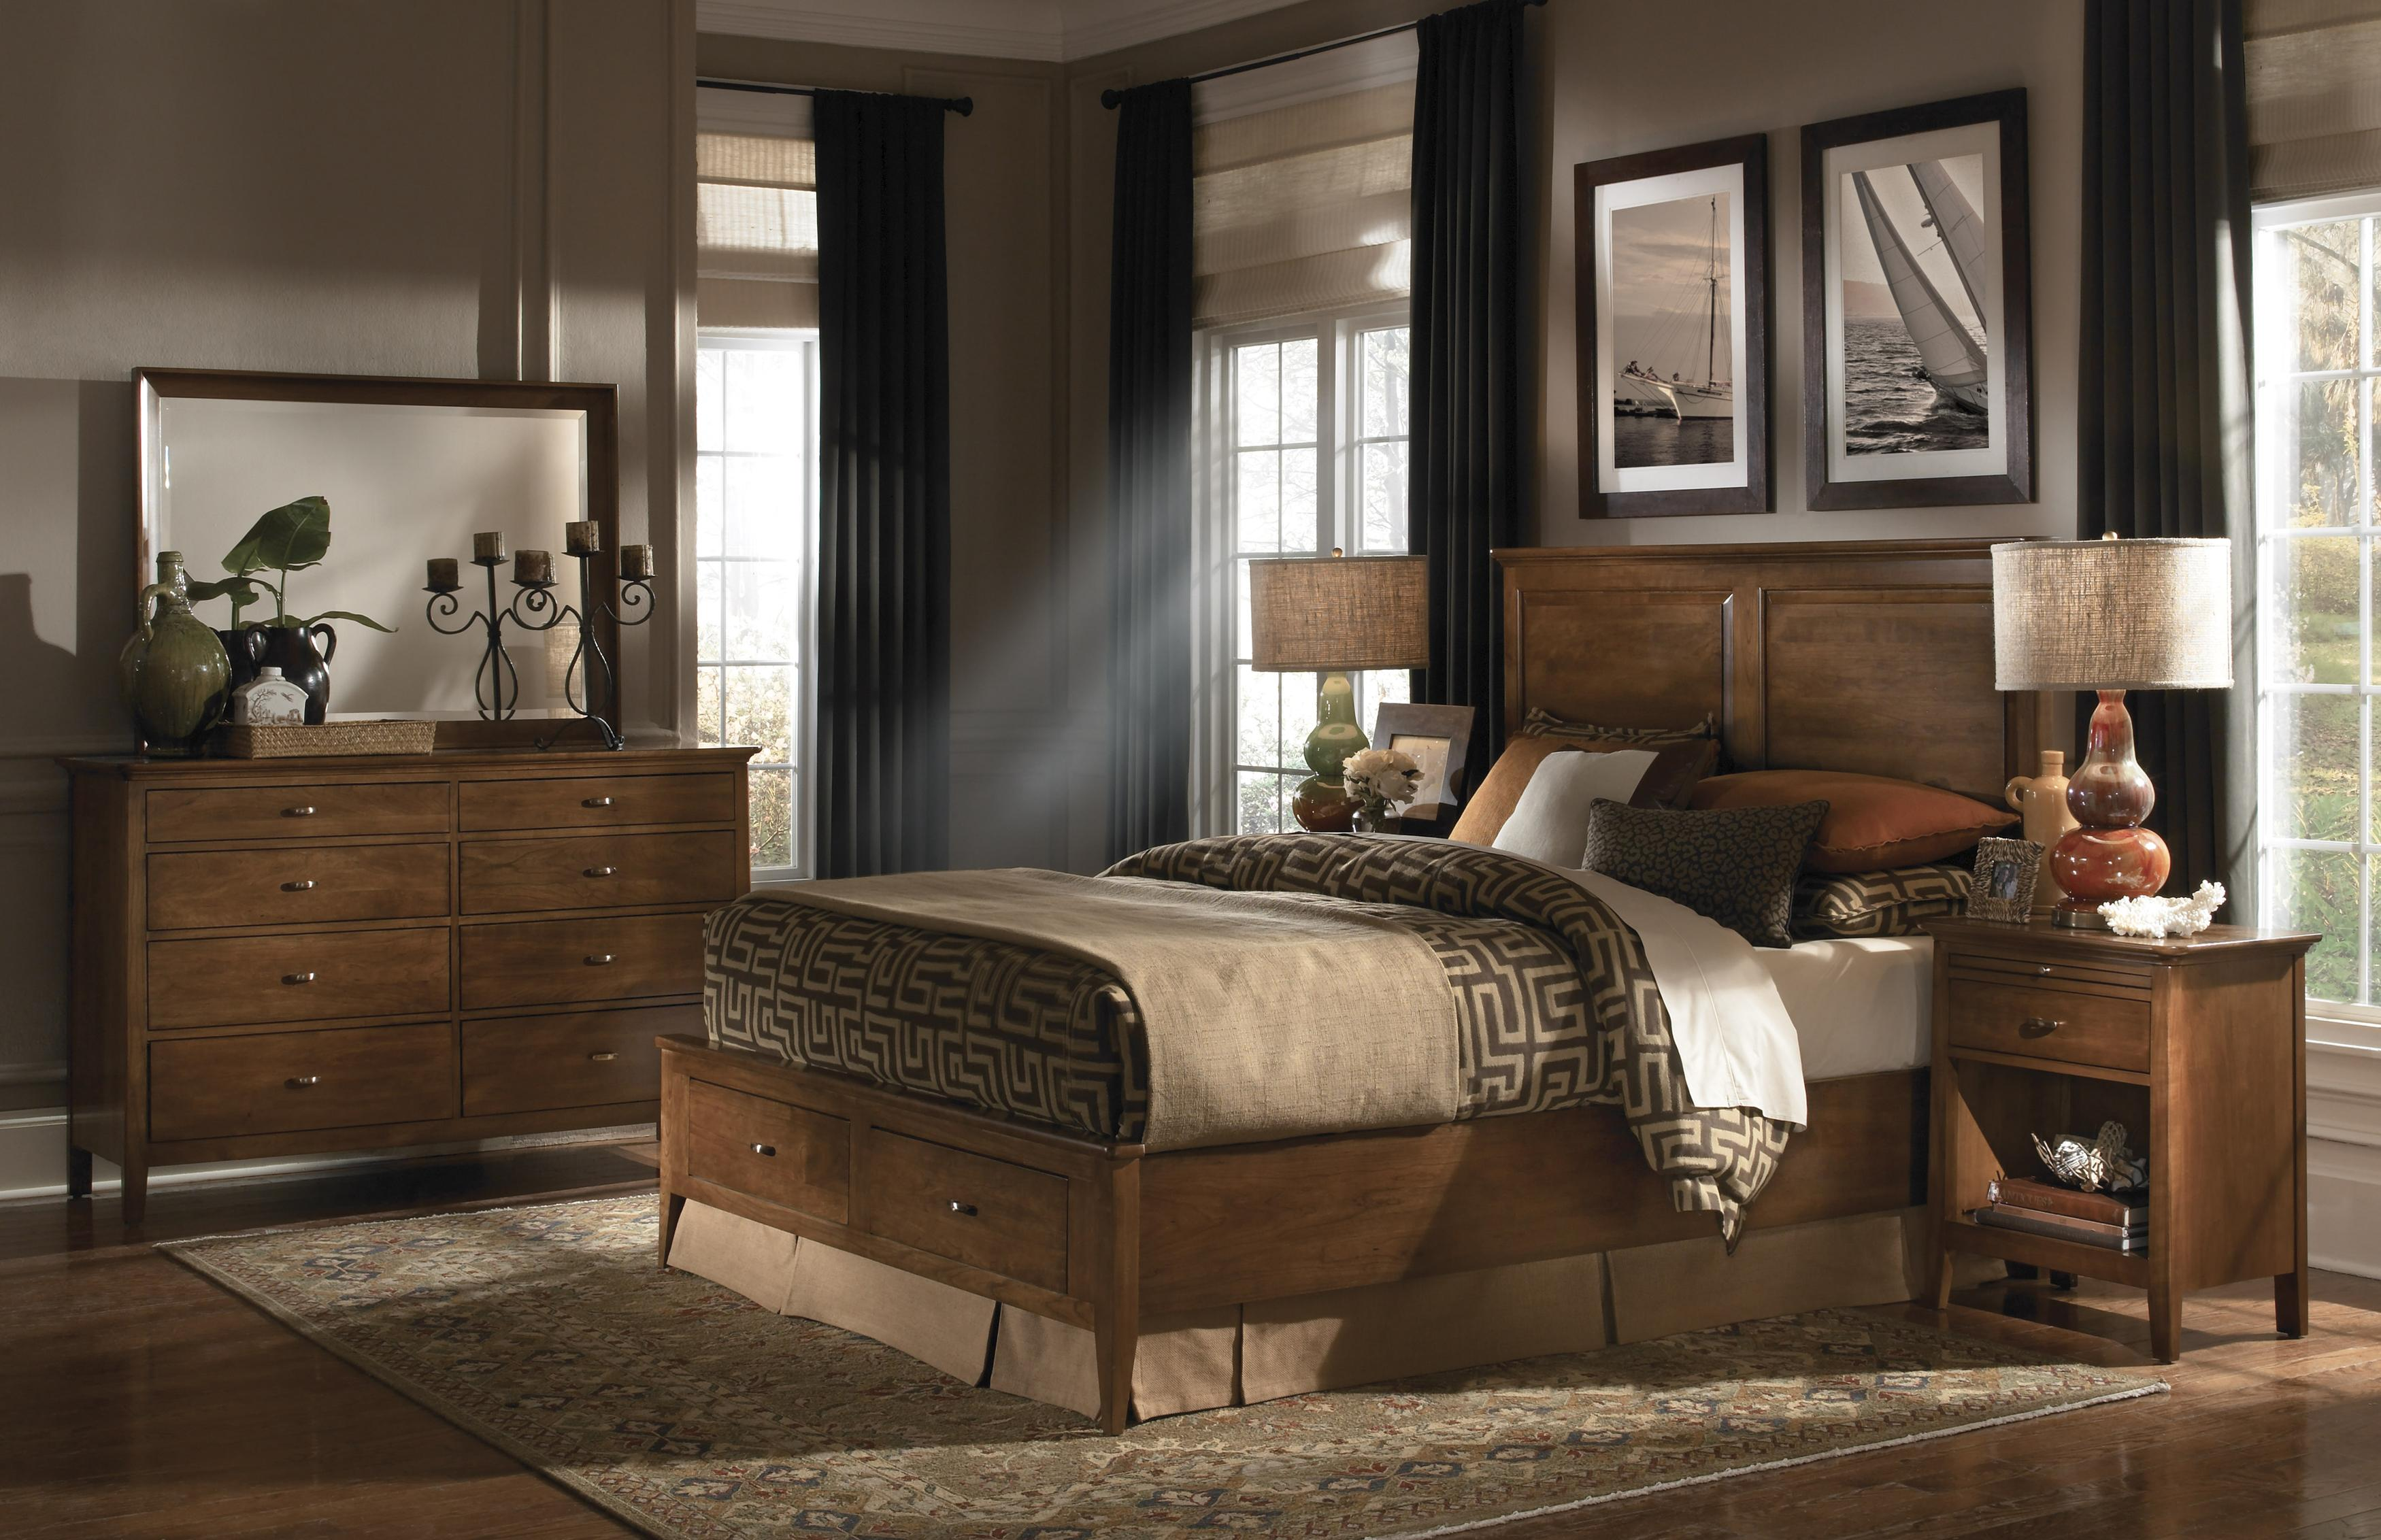 Kincaid Furniture Cherry Park King Bedroom Group Becker Furniture World Bedroom Groups